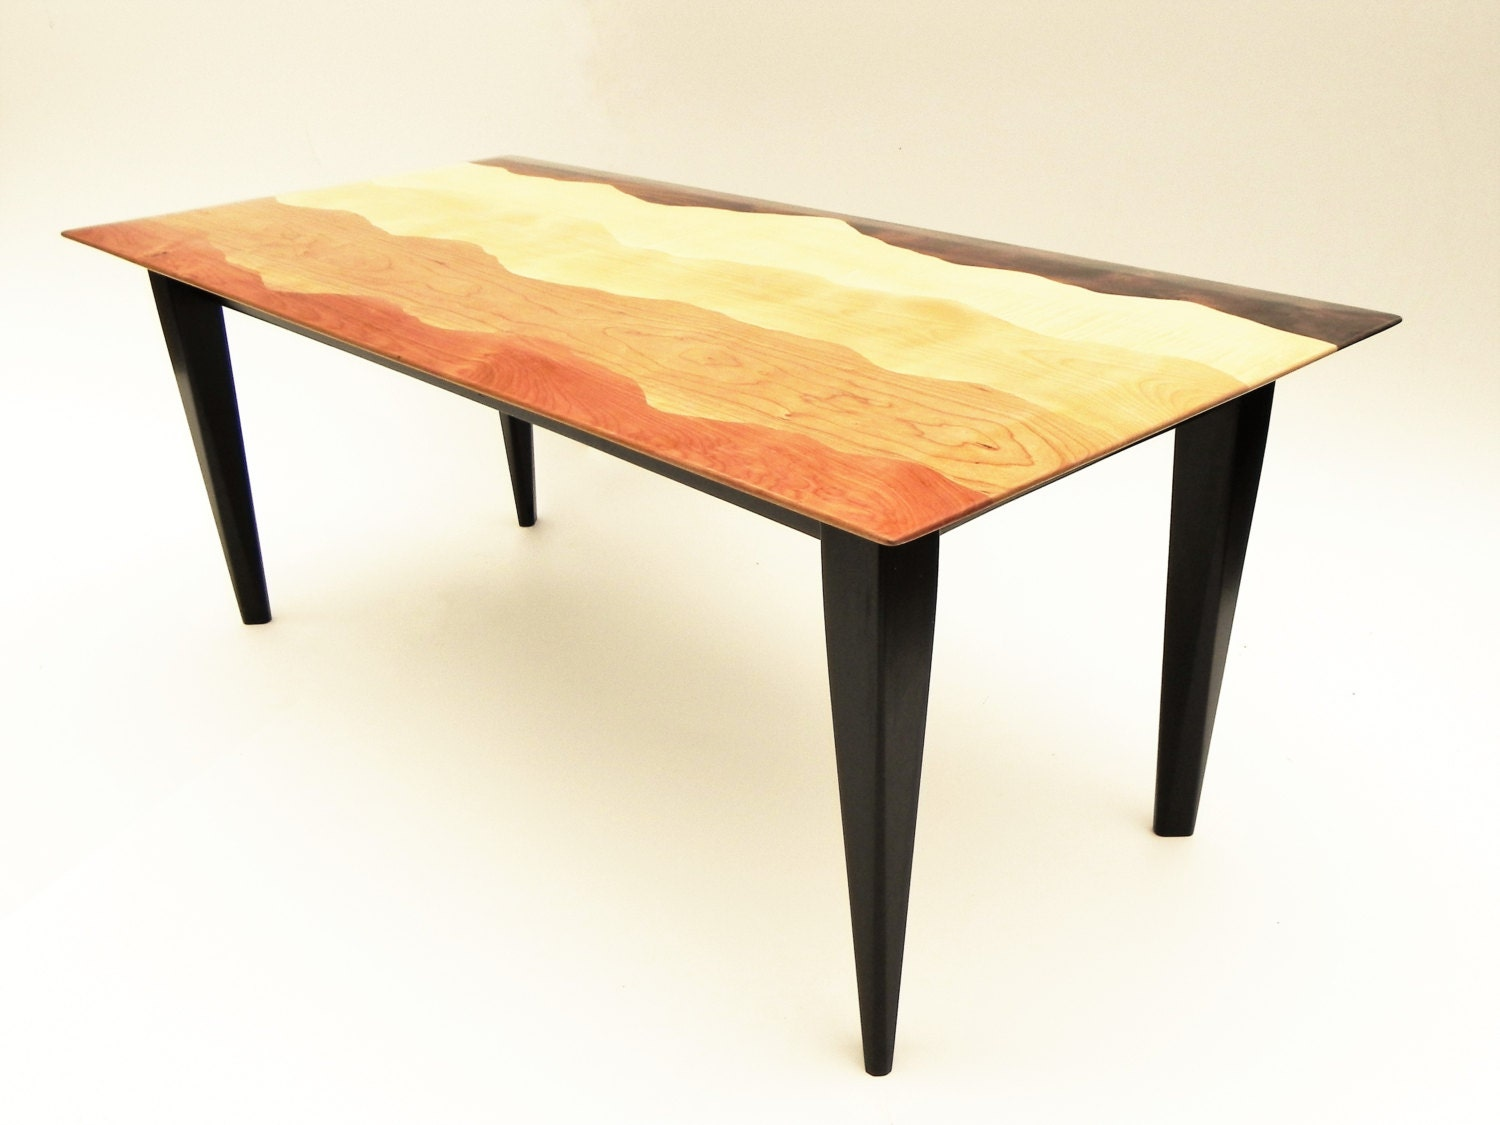 Superbe Mountain View Coffee Table /Black Walnut, Tiger Maple, Curly Birch, Cherry,  Red Birch, Ebonized Cherry/